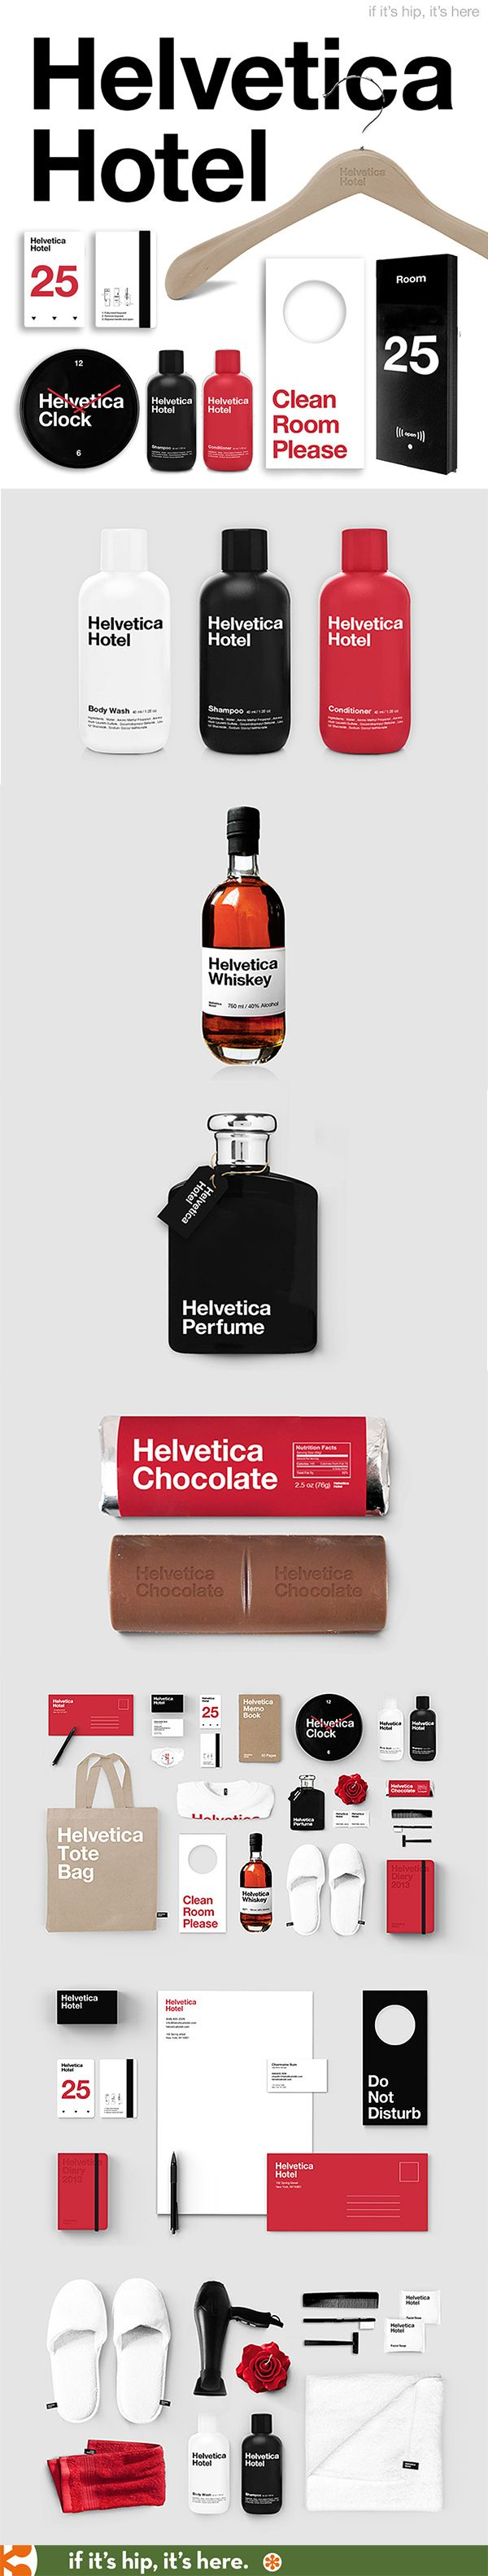 Branding and Package design for the fictional Helvetica Hotel by Albert Son. (I know I don't usually post concepts, but I couldn't ignore this one).